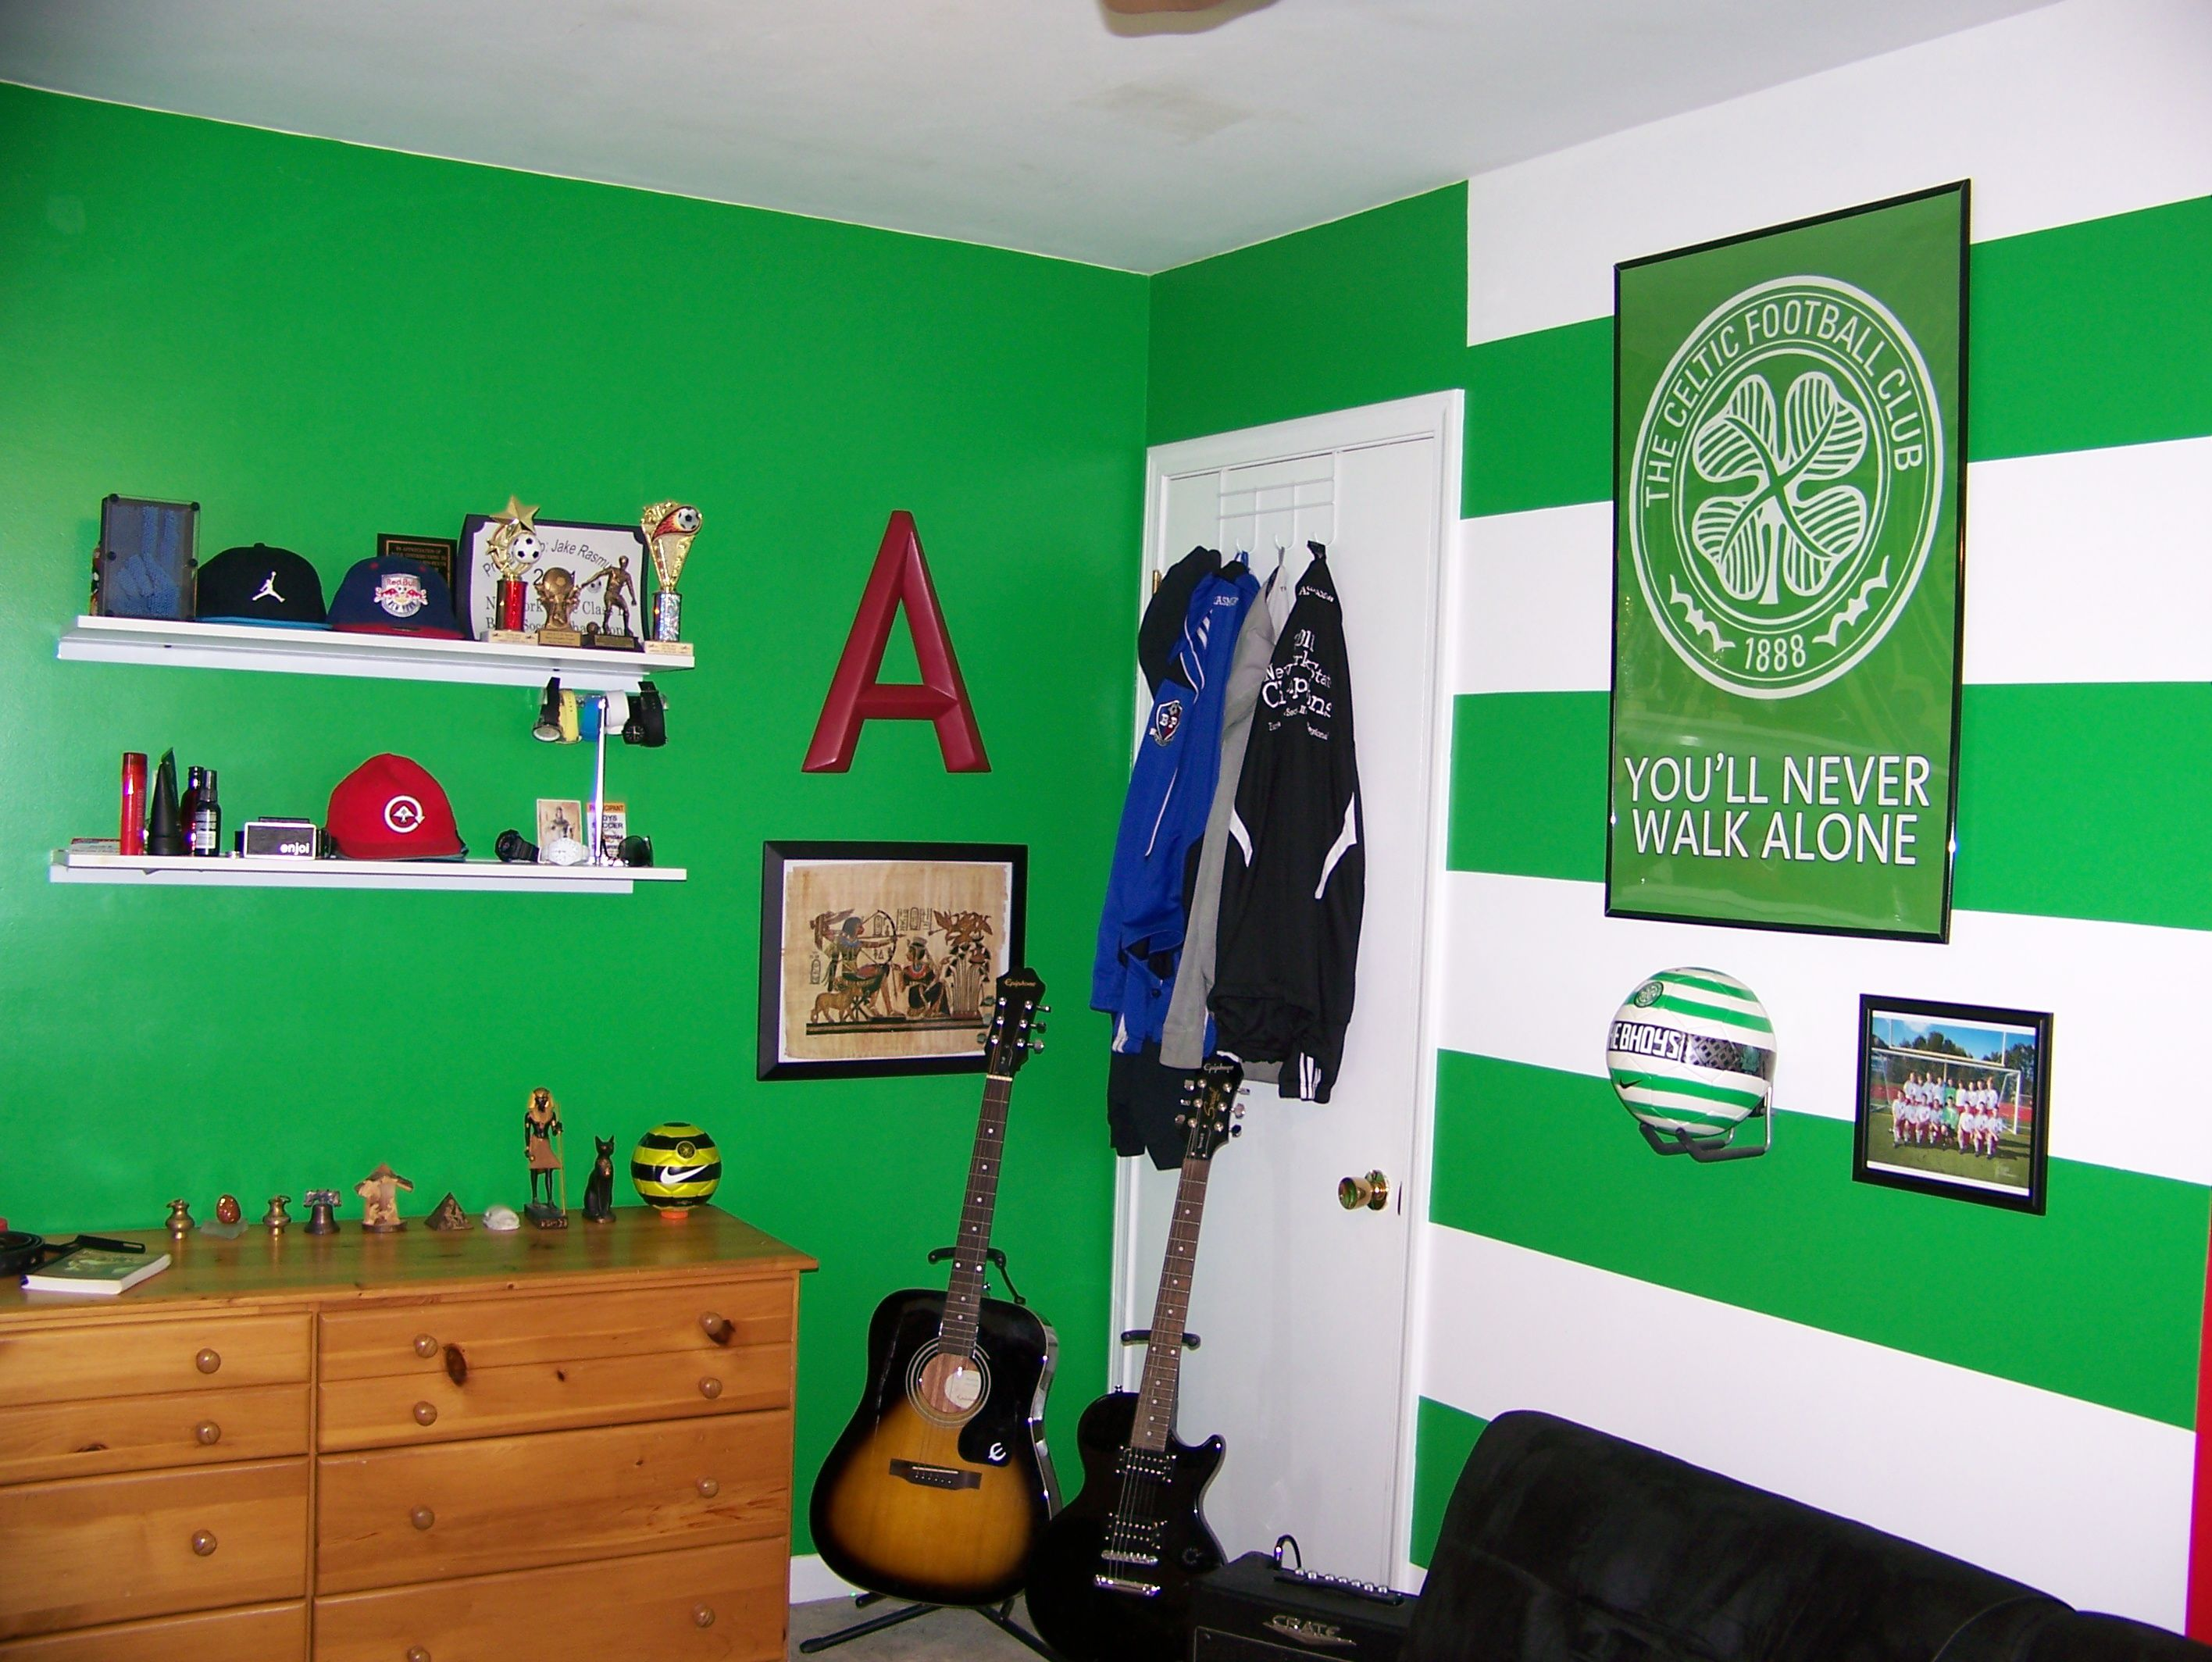 Celtic Fc Hoops And Colors Painted And Decorated In Adams